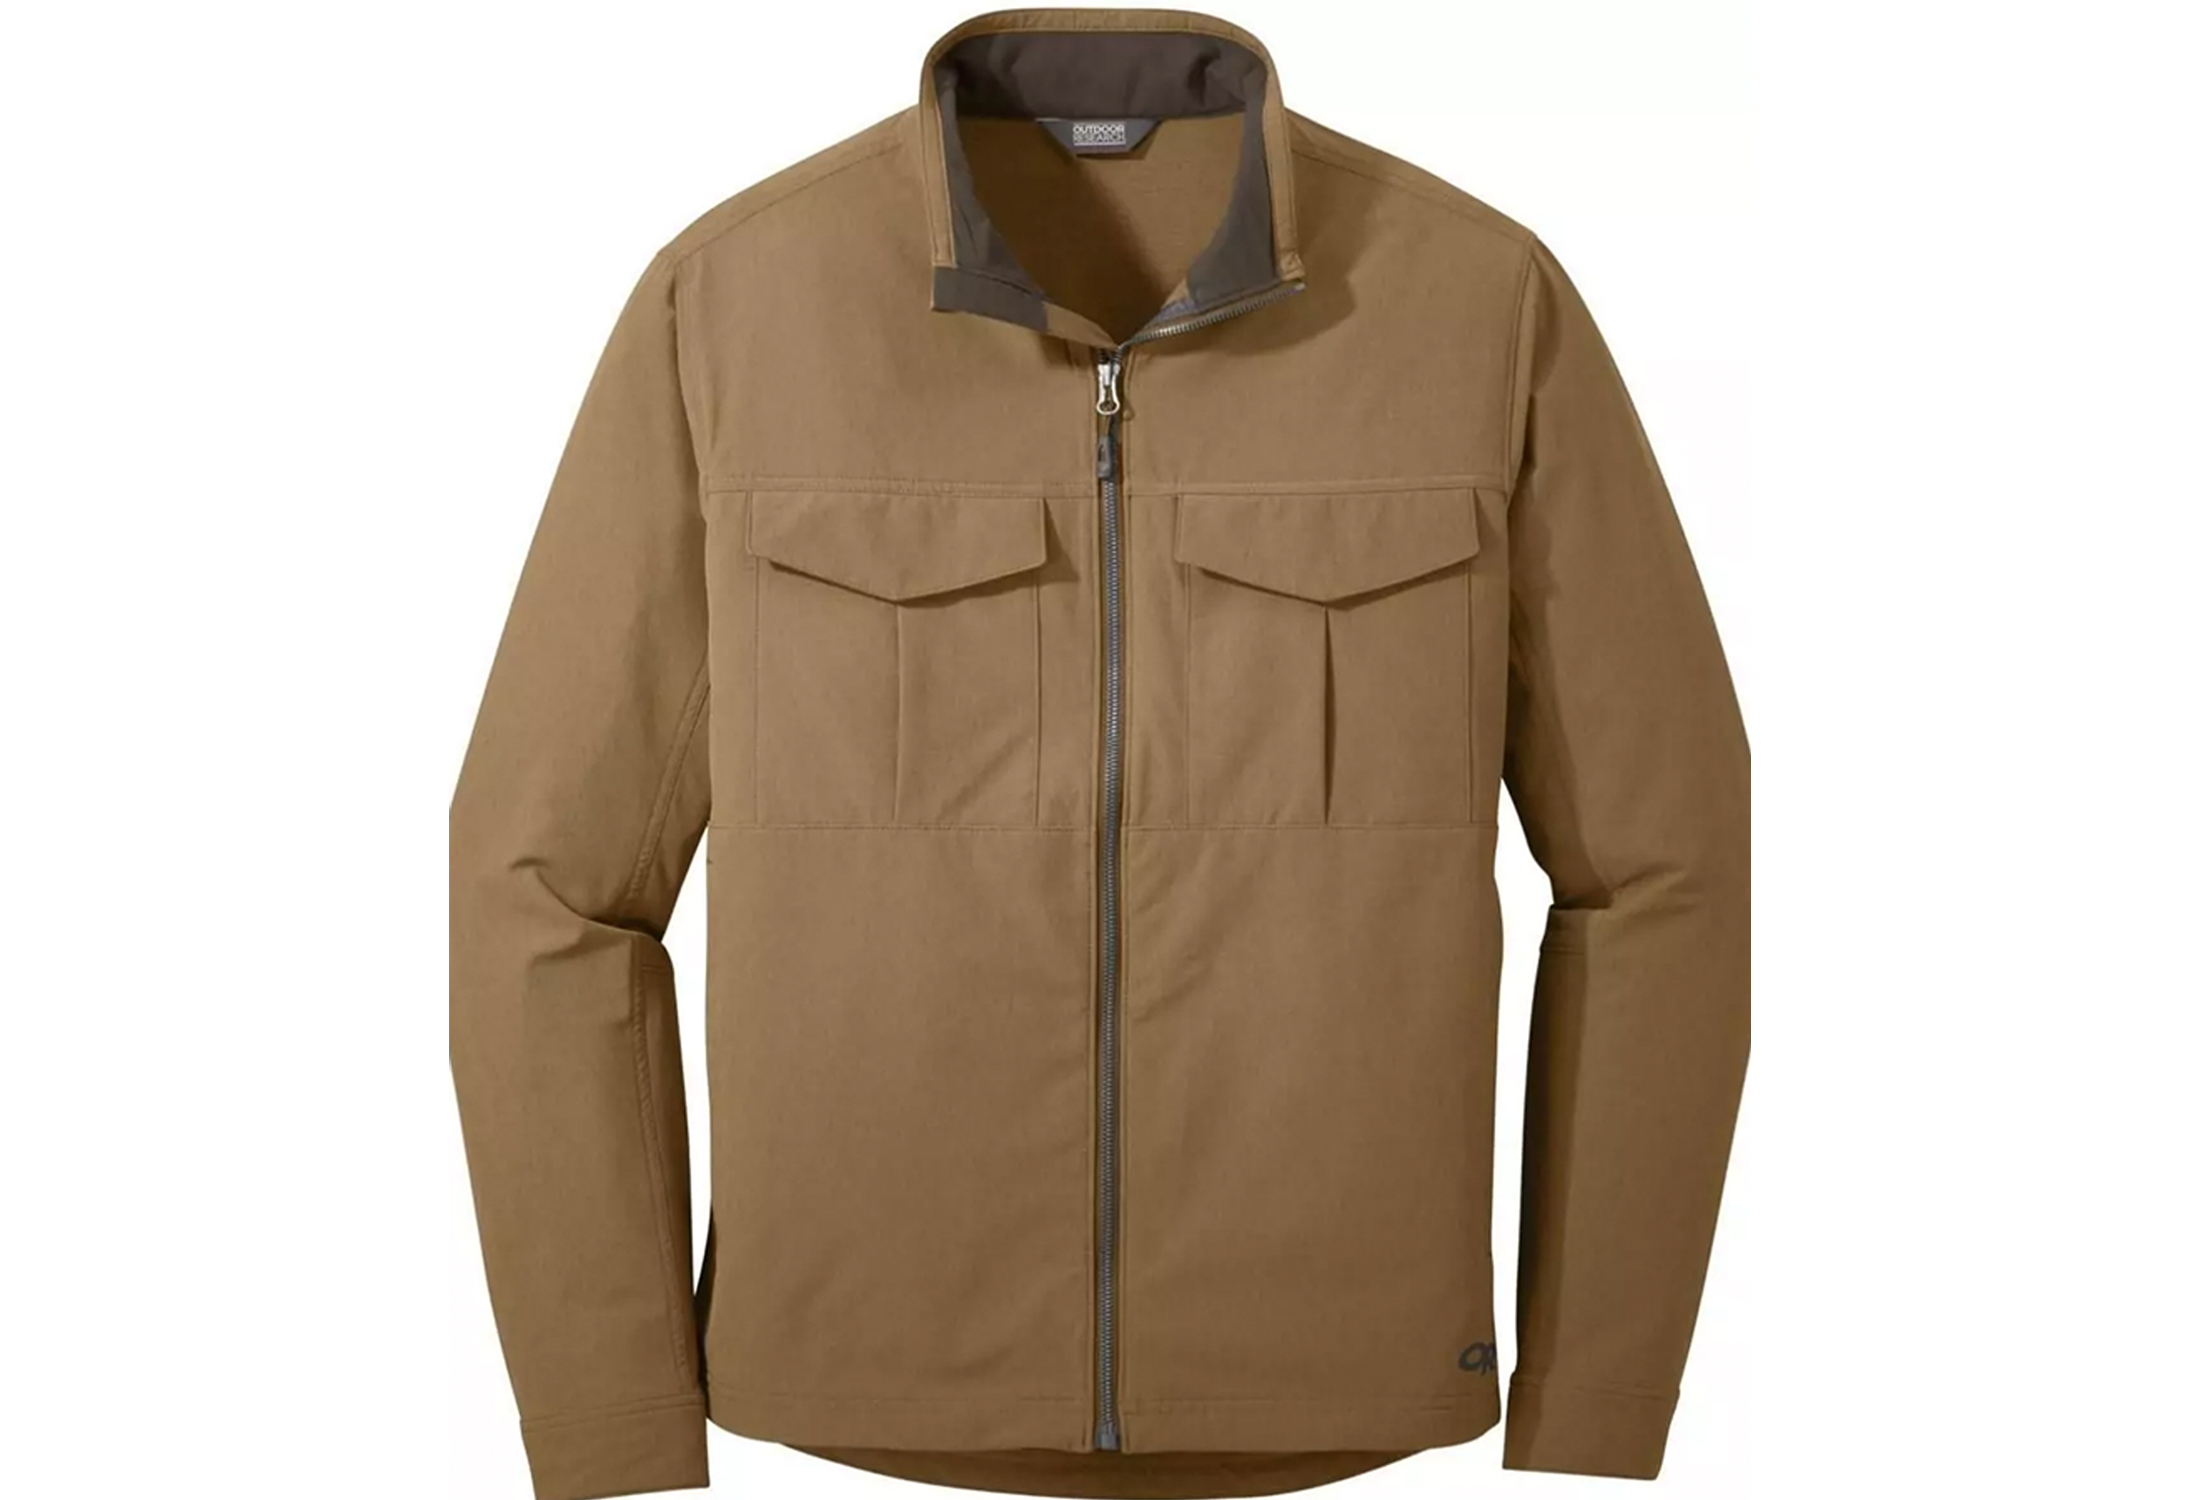 OR prologue field jacket